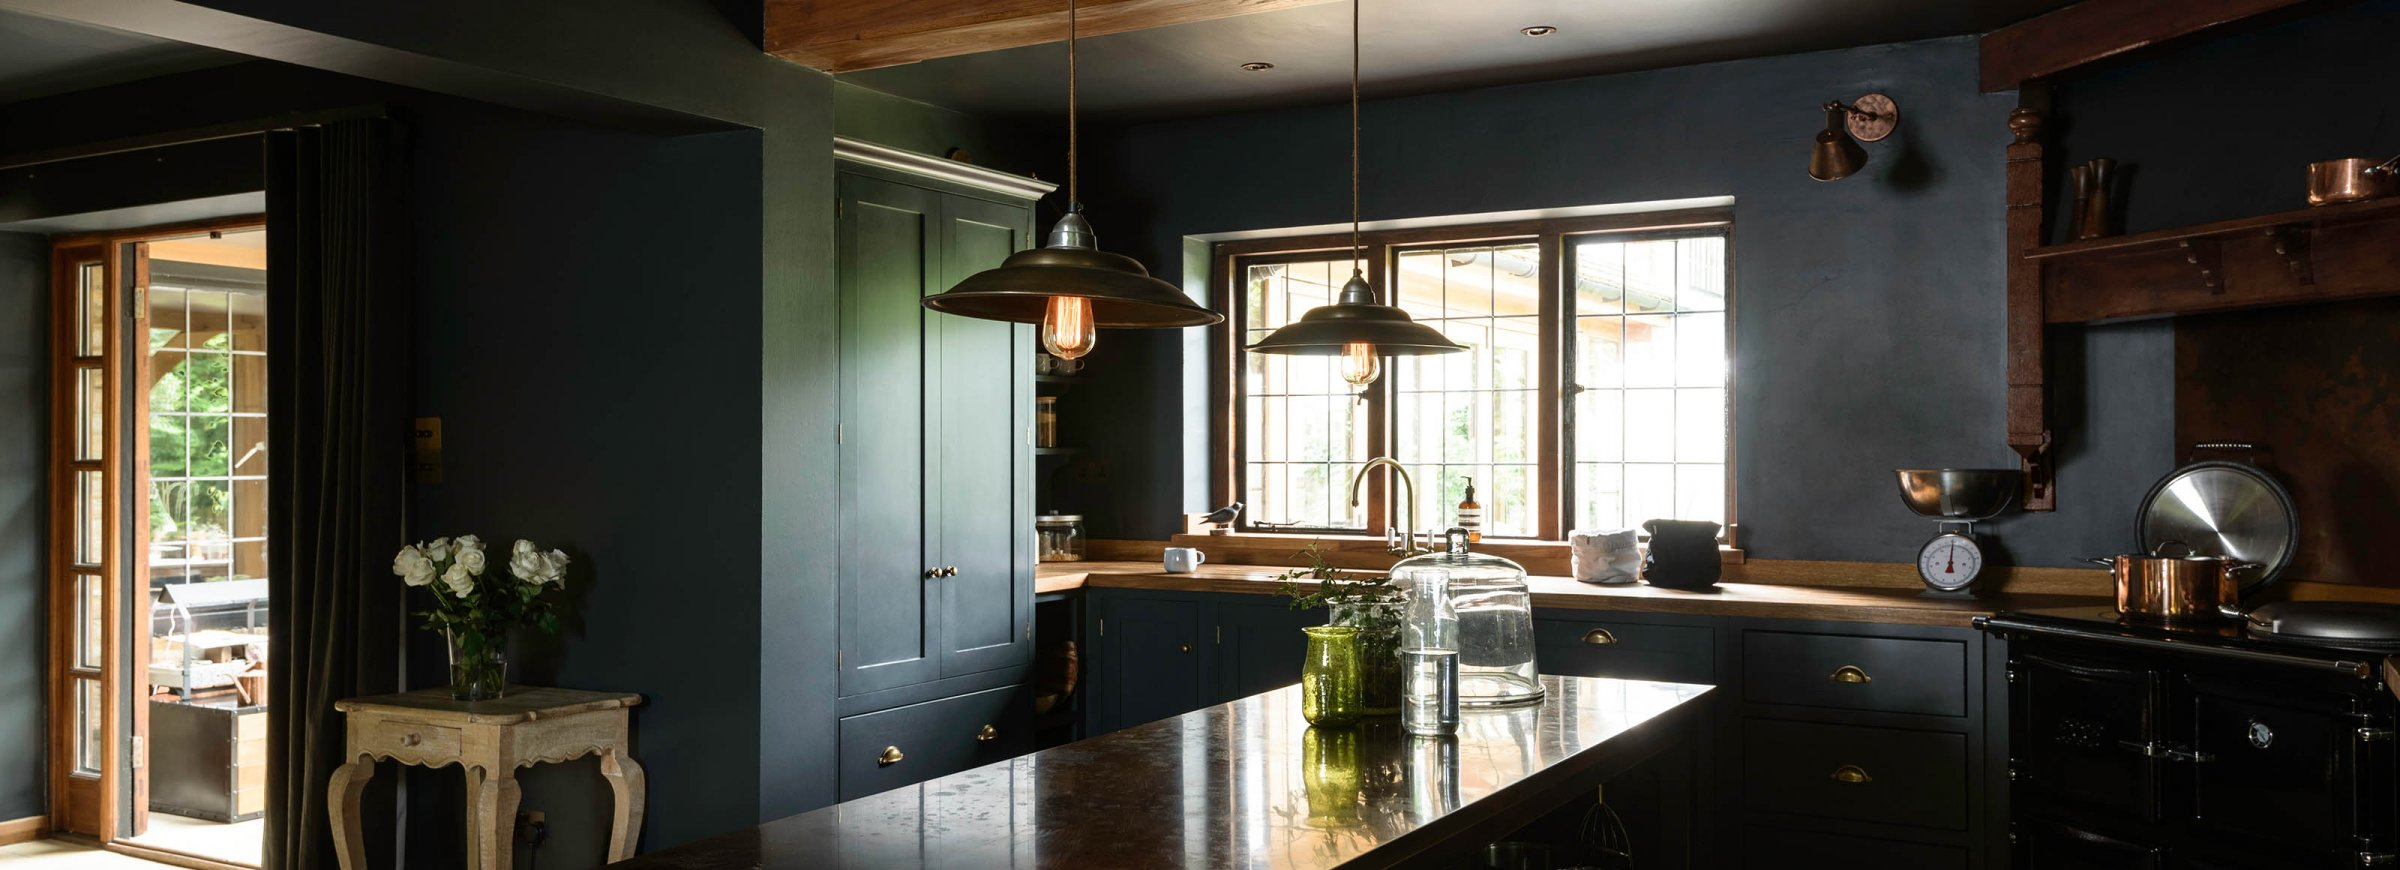 Amazing Devol Kitchens Simple Furniture Beautifully Made Kitchens Bathrooms  And Interiors With Eckbnke Fr Kchen